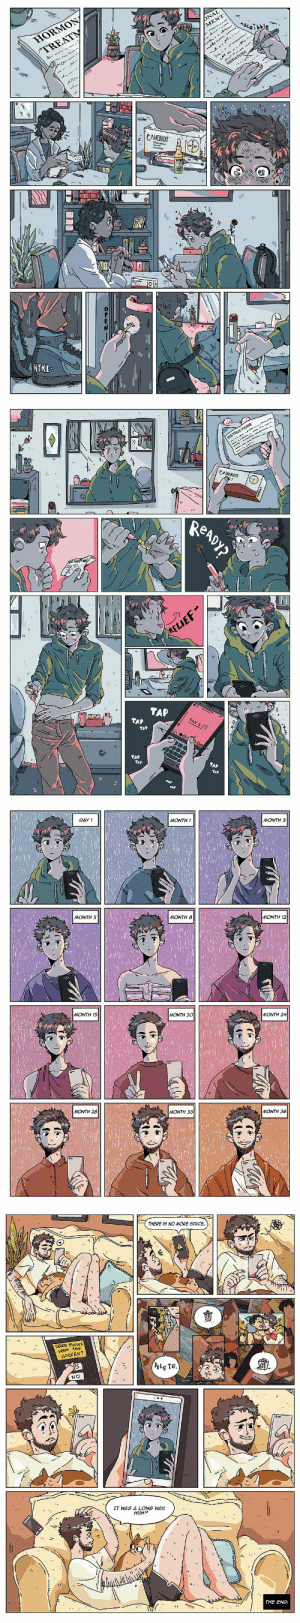 randomslasher: deusexmachinass:  assigned-at-birth-comic: supporting other lovely trans comic artists❤  Hi I know I reblogged this like two weeks ago but I'm gonna reblog it again  I love the way the color and light comes into his world as things progress. Just a really beautiful artistic touch.  : randomslasher: deusexmachinass:  assigned-at-birth-comic: supporting other lovely trans comic artists❤  Hi I know I reblogged this like two weeks ago but I'm gonna reblog it again  I love the way the color and light comes into his world as things progress. Just a really beautiful artistic touch.